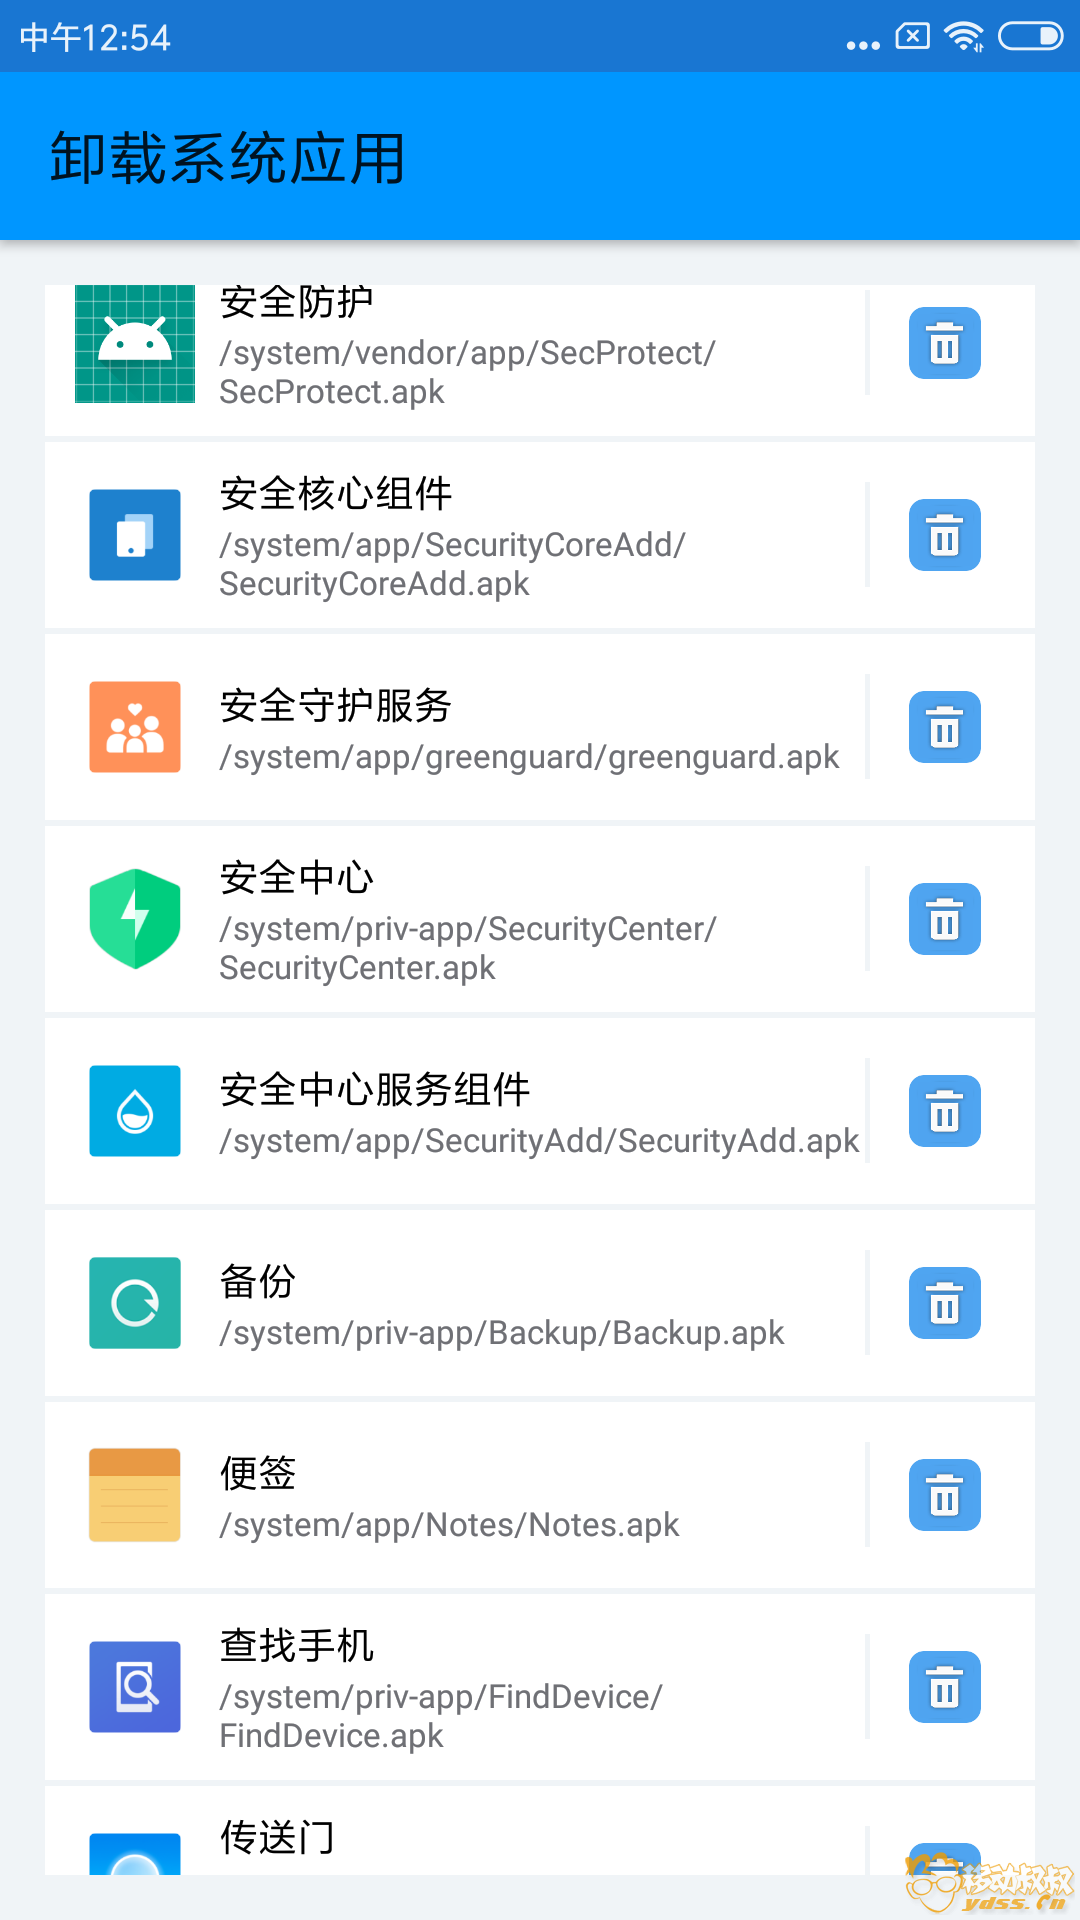 Screenshot_2018-10-04-12-54-14-023_com.zhanhong.tools.png